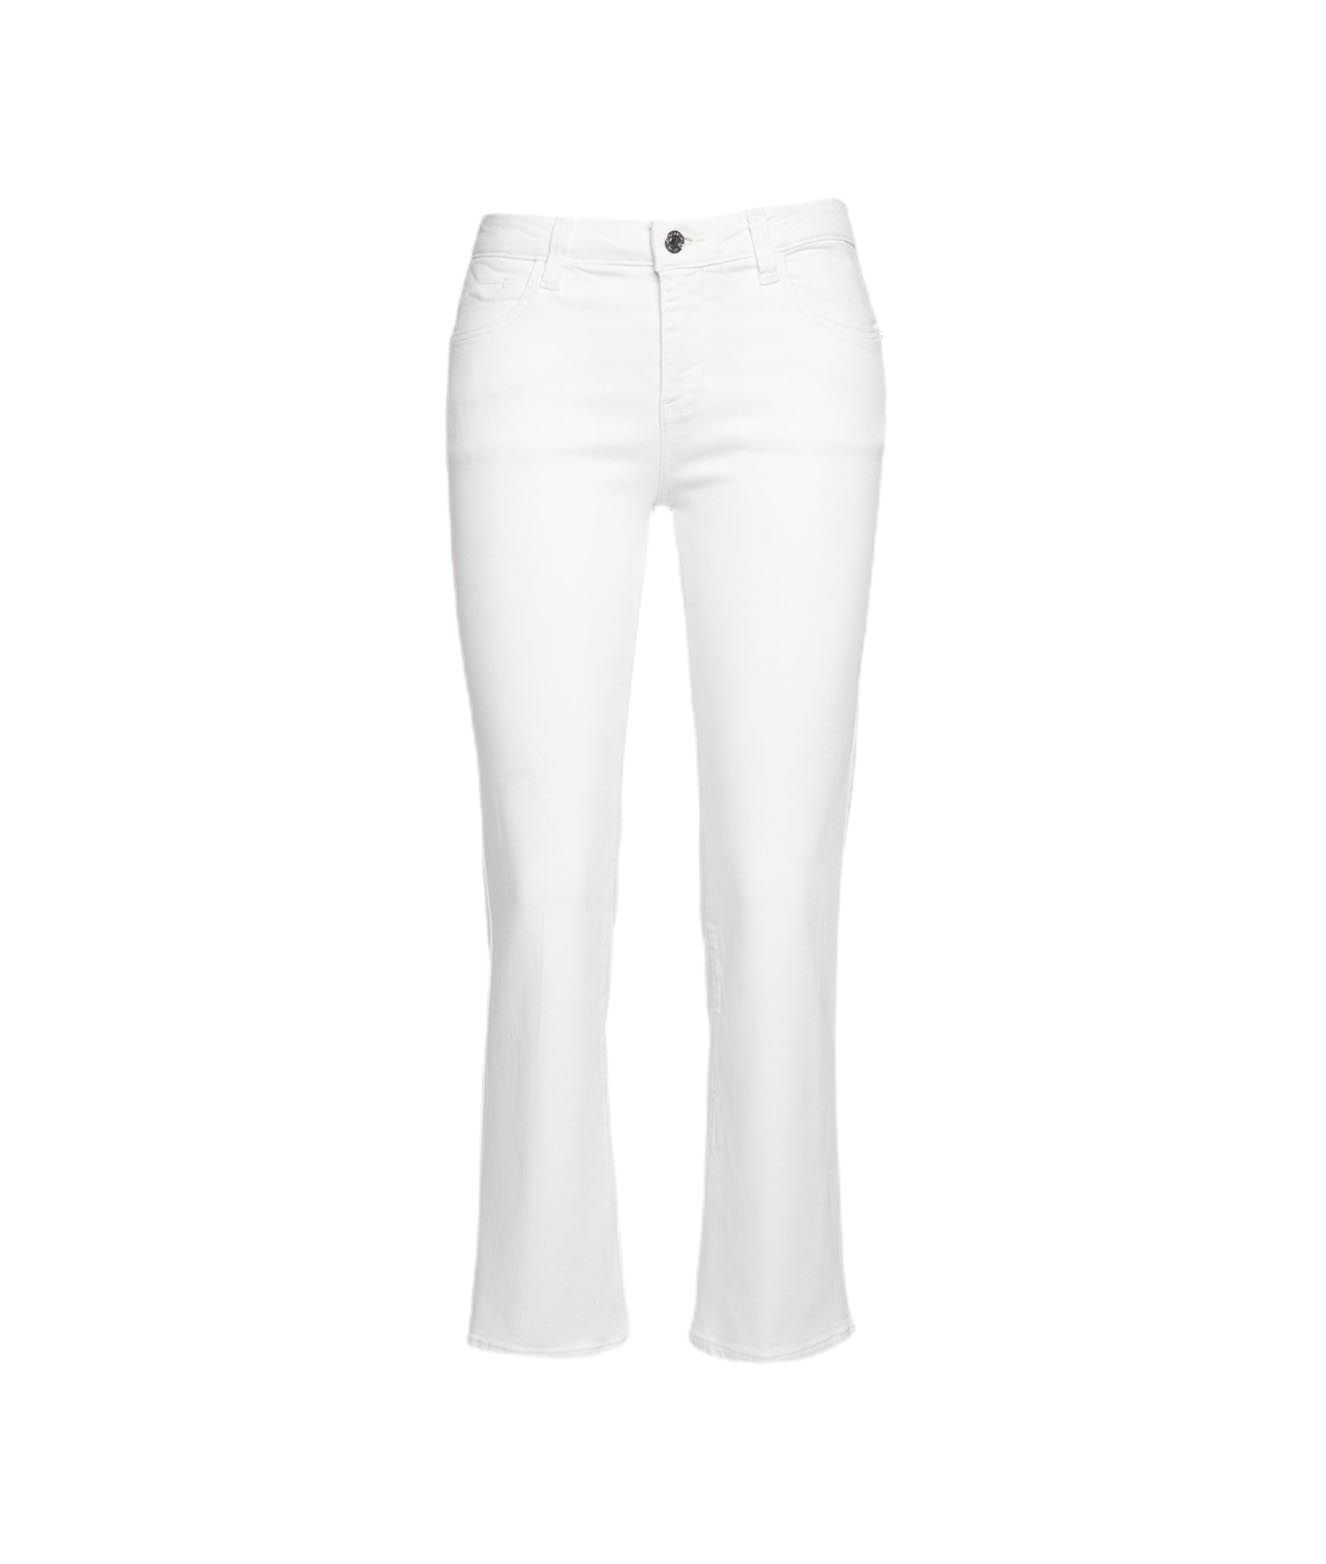 Guess Jeans GUESS WOMEN'S W1GA48D4DM111PMOO WHITE OTHER MATERIALS JEANS